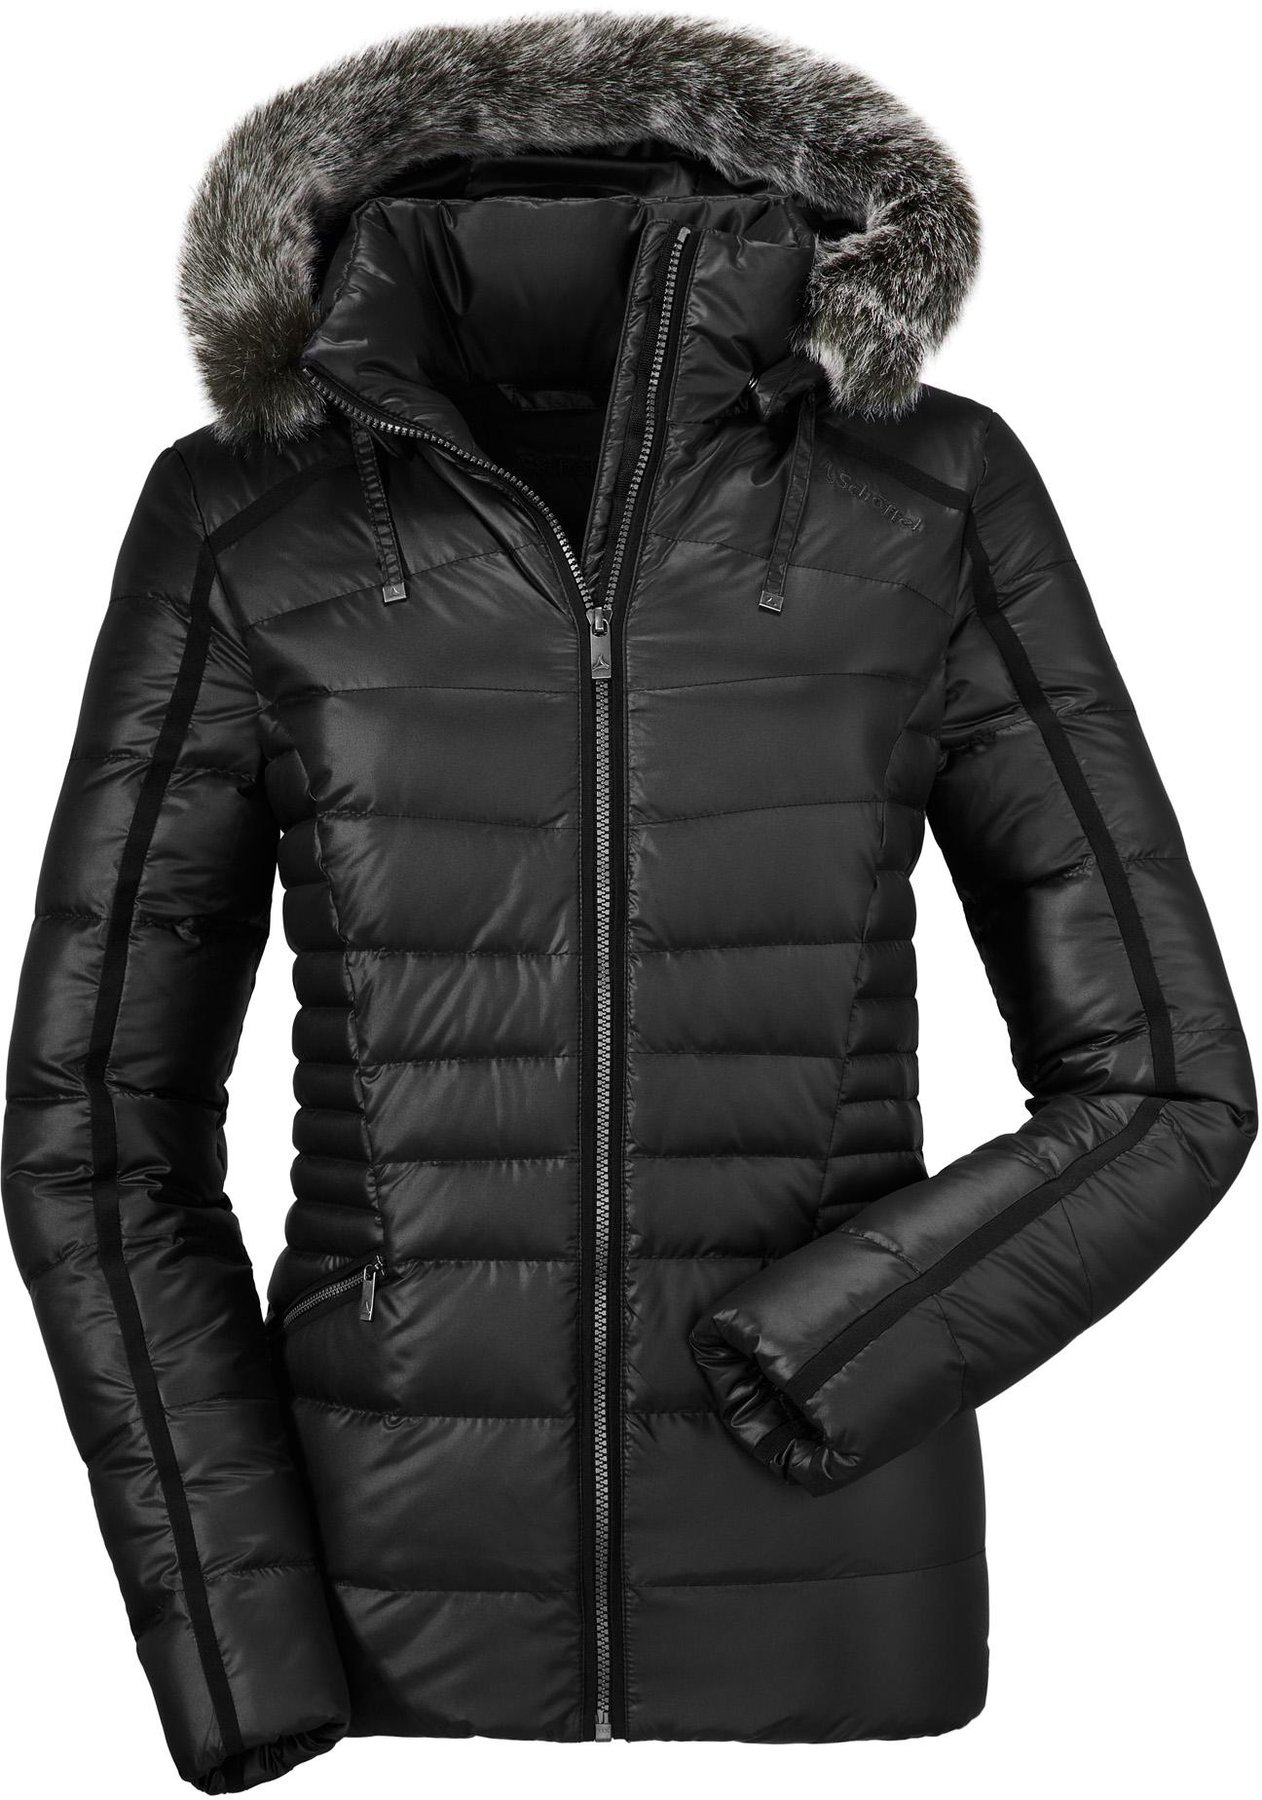 cheap for discount 63d54 2d311 Schöffel Daunenjacke Damen